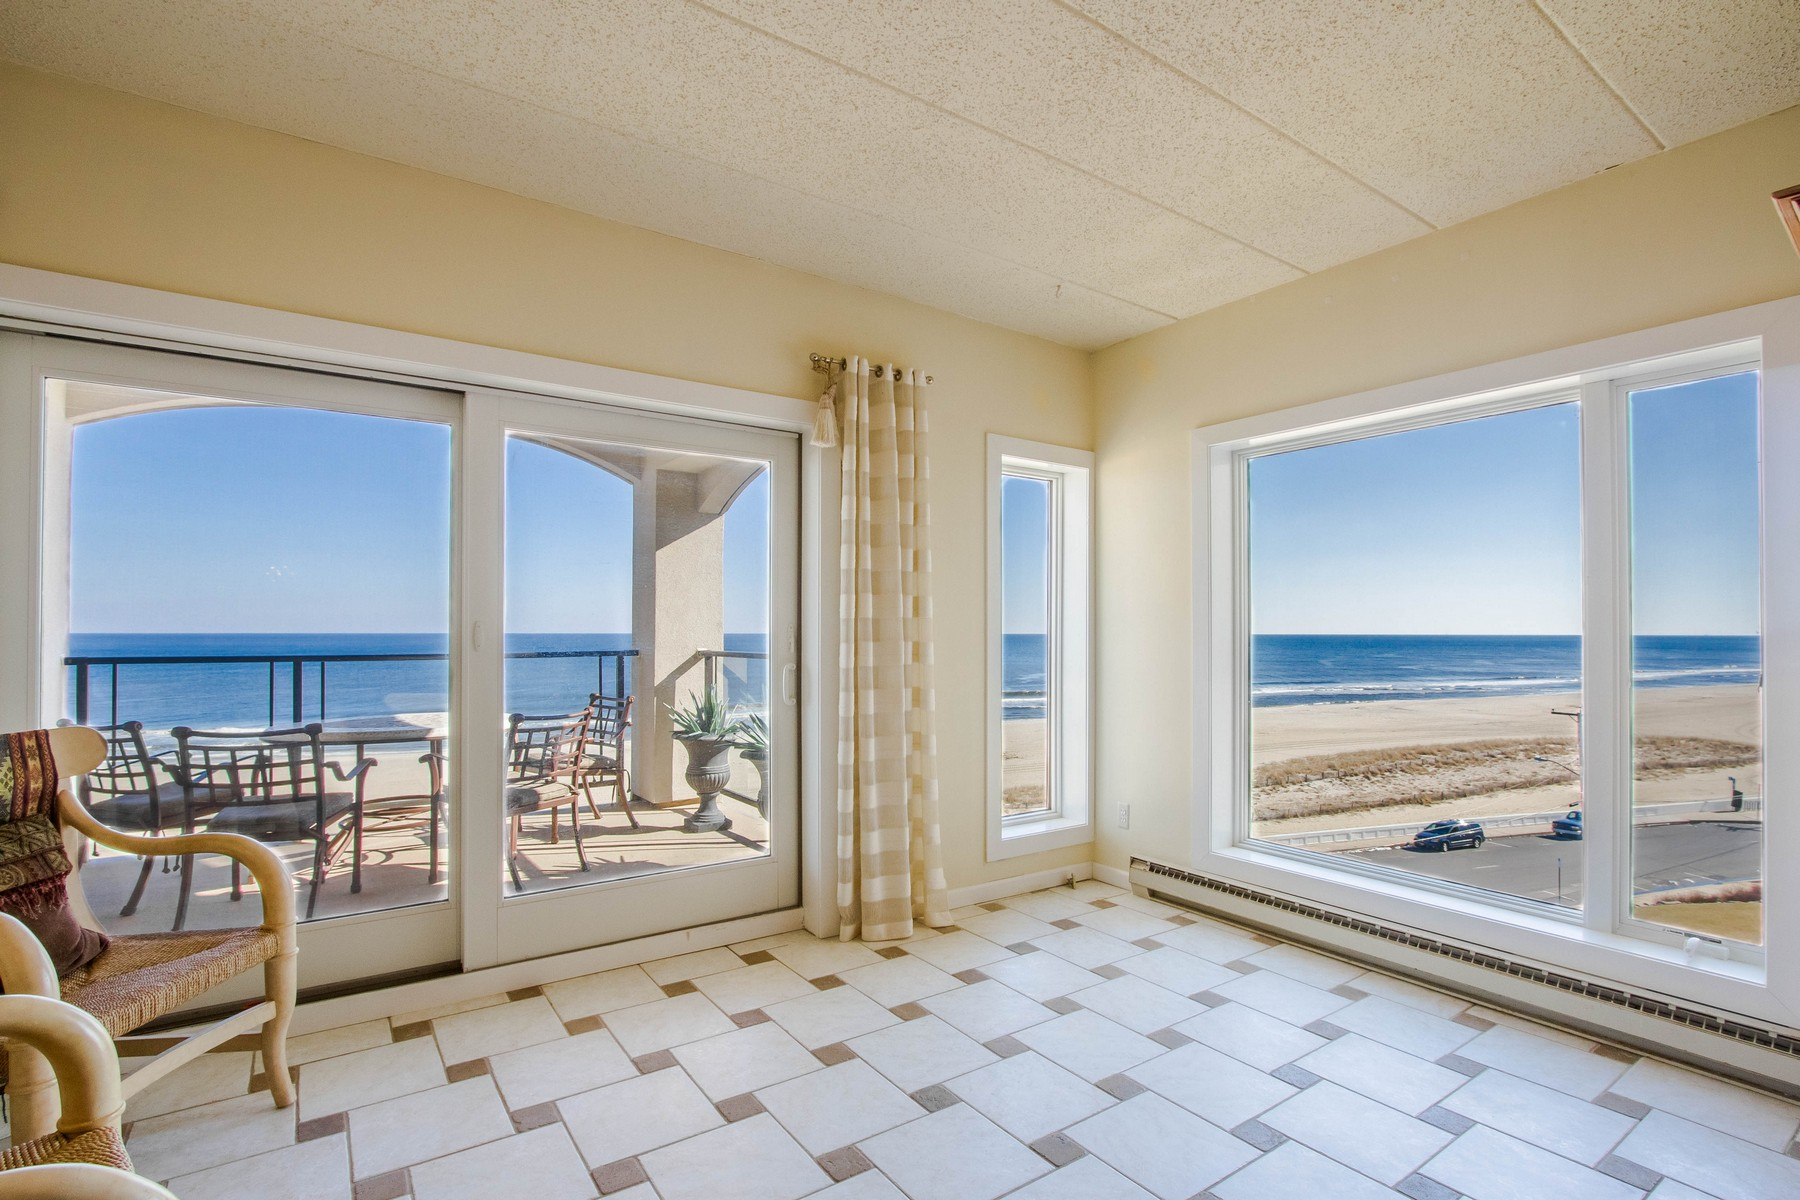 Condominium for Sale at LIVE OCEANFRONT 388 N Ocean Avenue, 5C, Long Branch, New Jersey 07740 United States